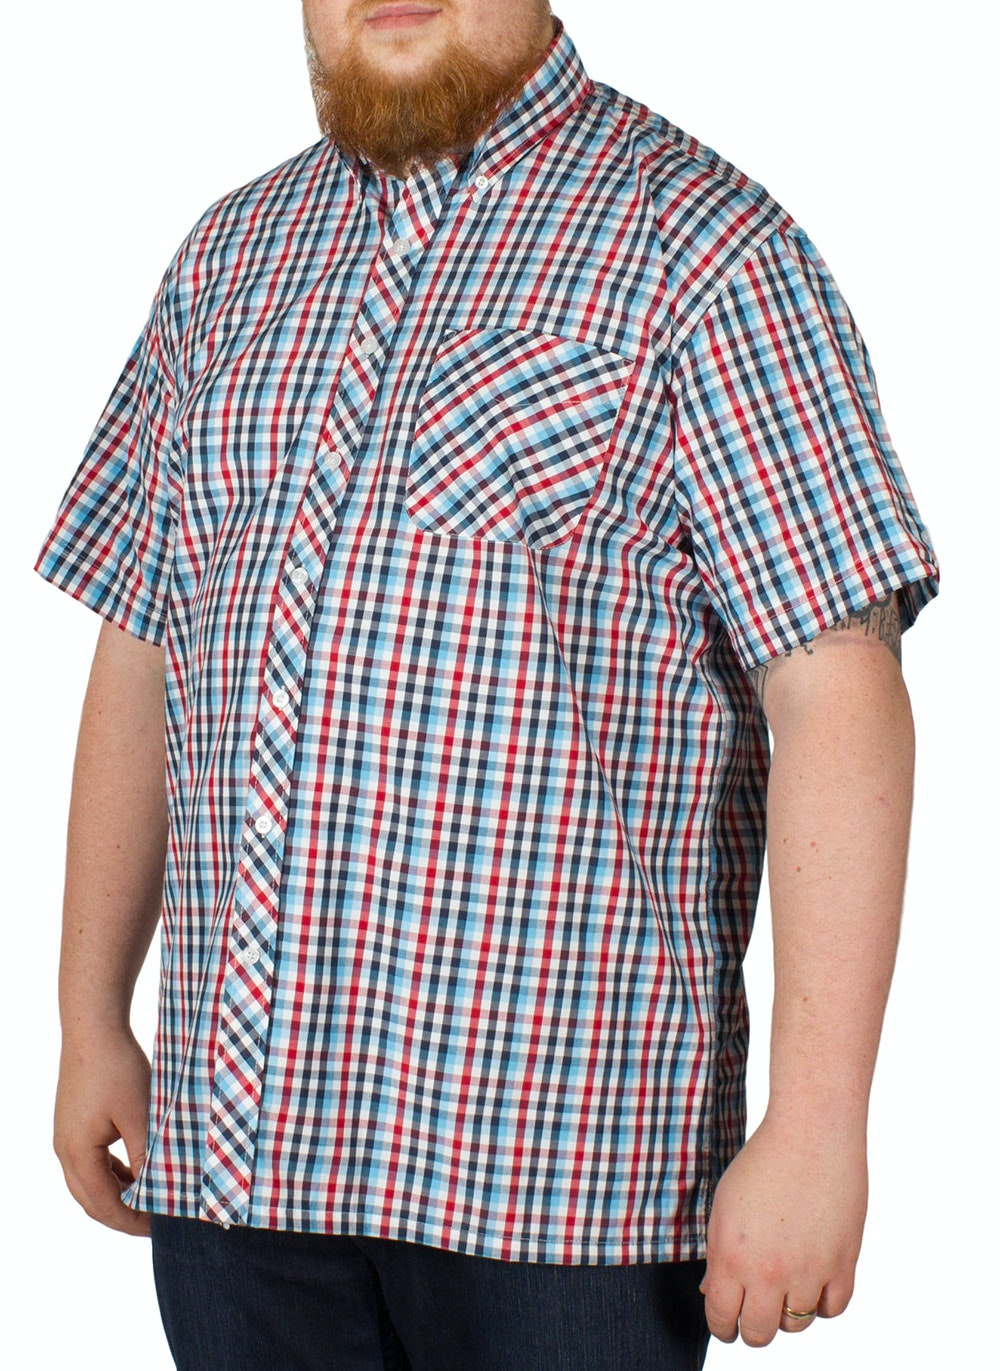 Espionage Short Sleeve Check Shirt Navy/Blue/Red